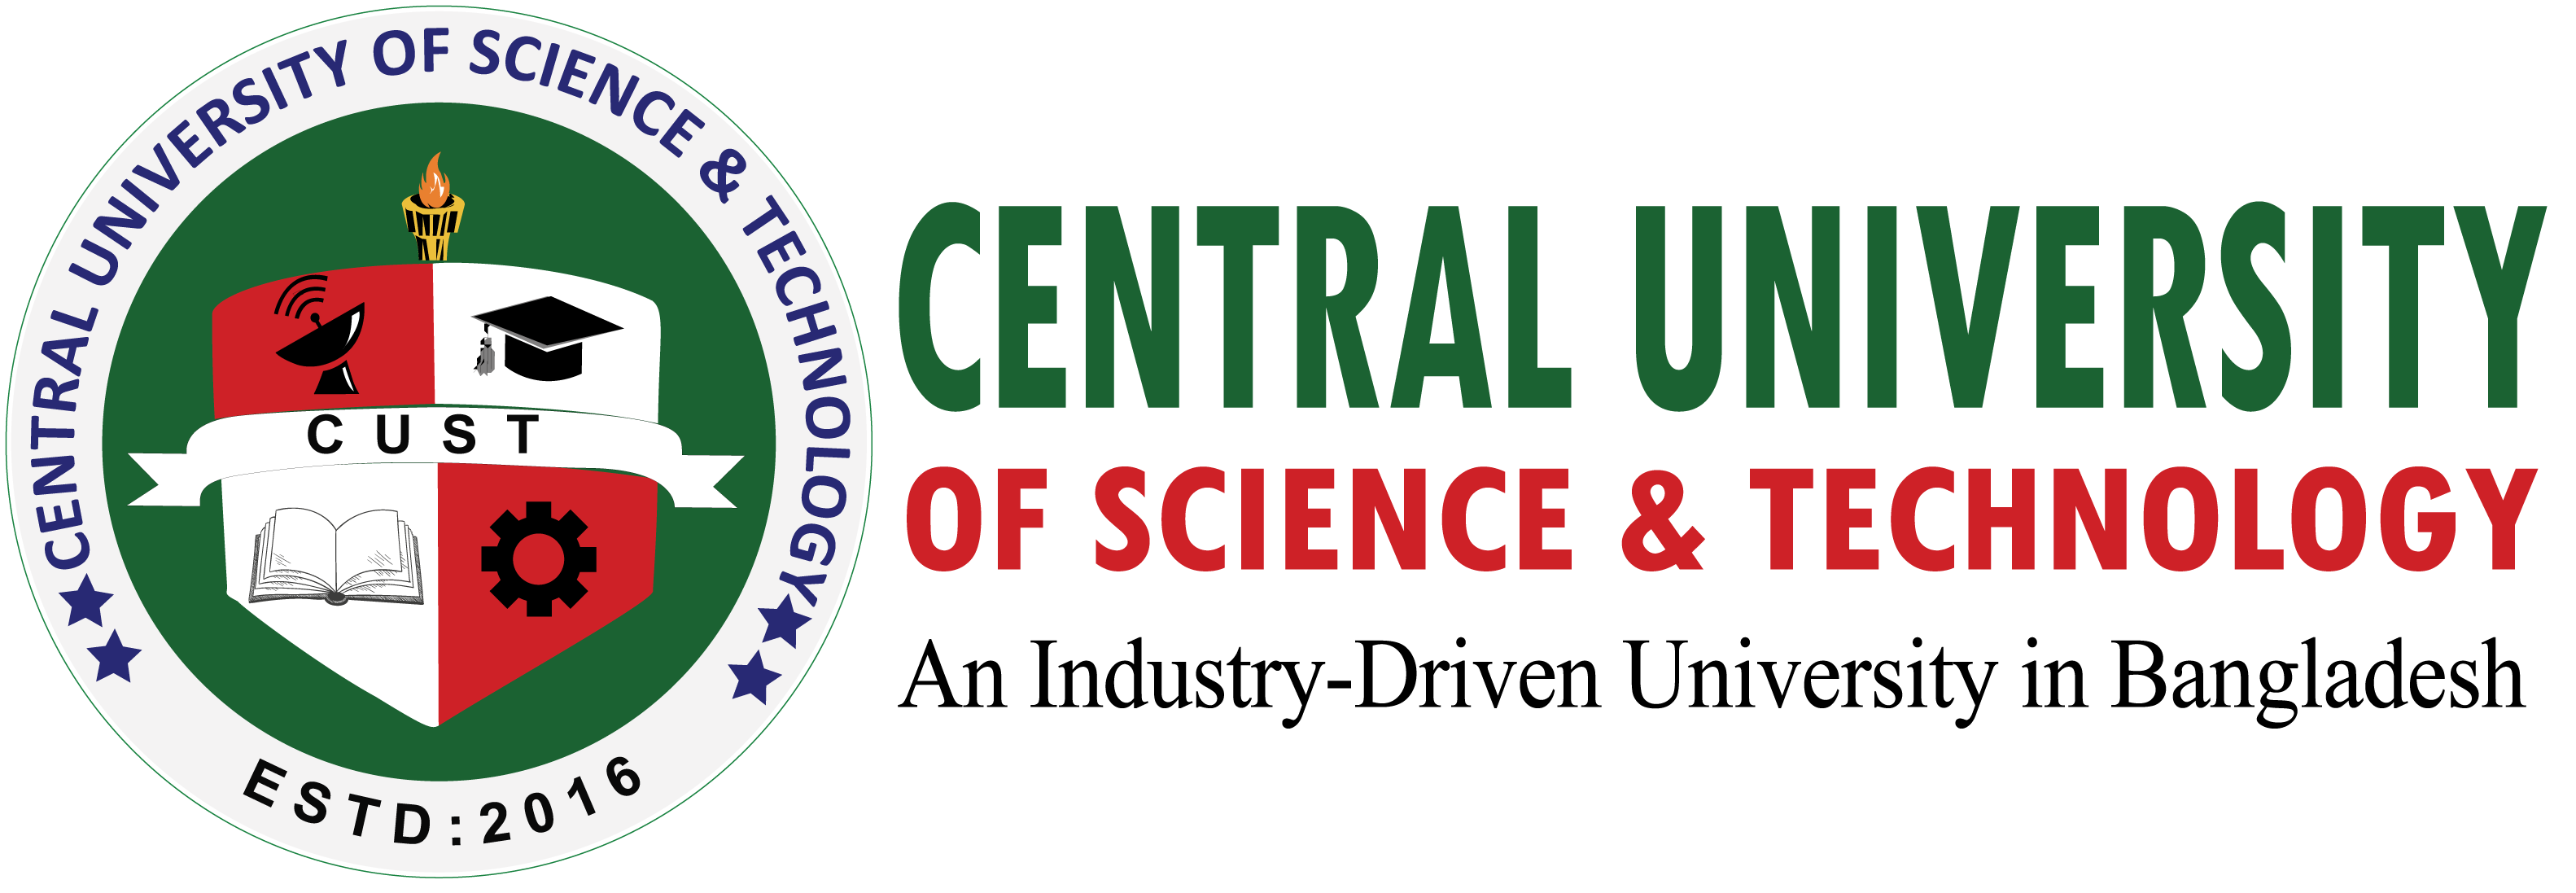 Offline Admission Form - Central University of Science & Technology